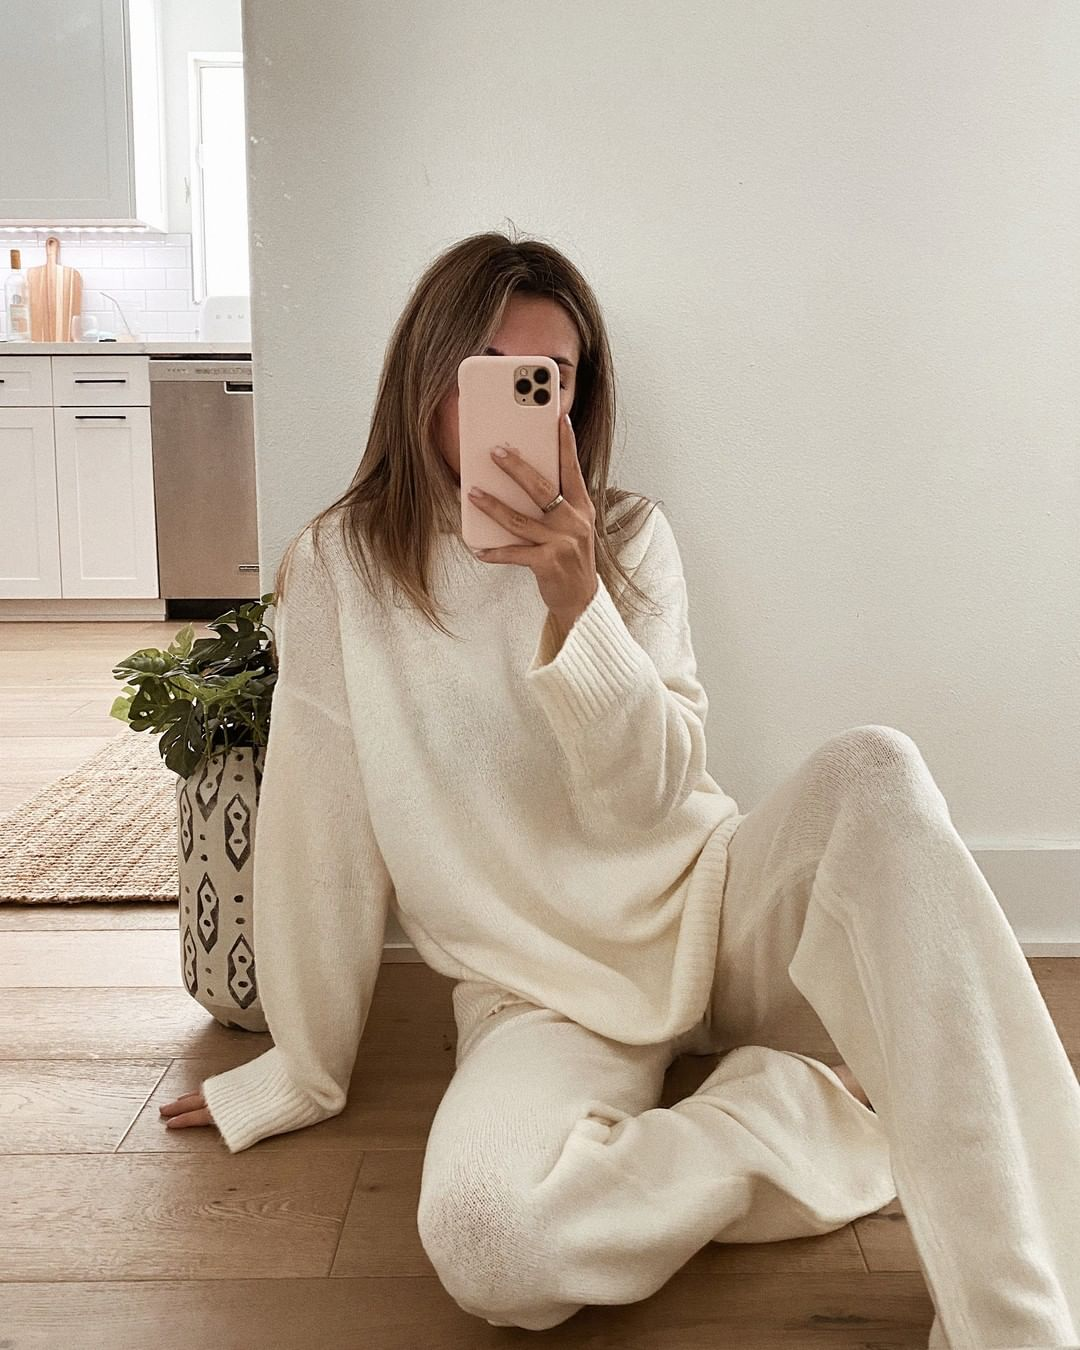 Cool Loungewear Sets for Staying or Working at Home — Tara Michelle Instagram Outift Inspiration